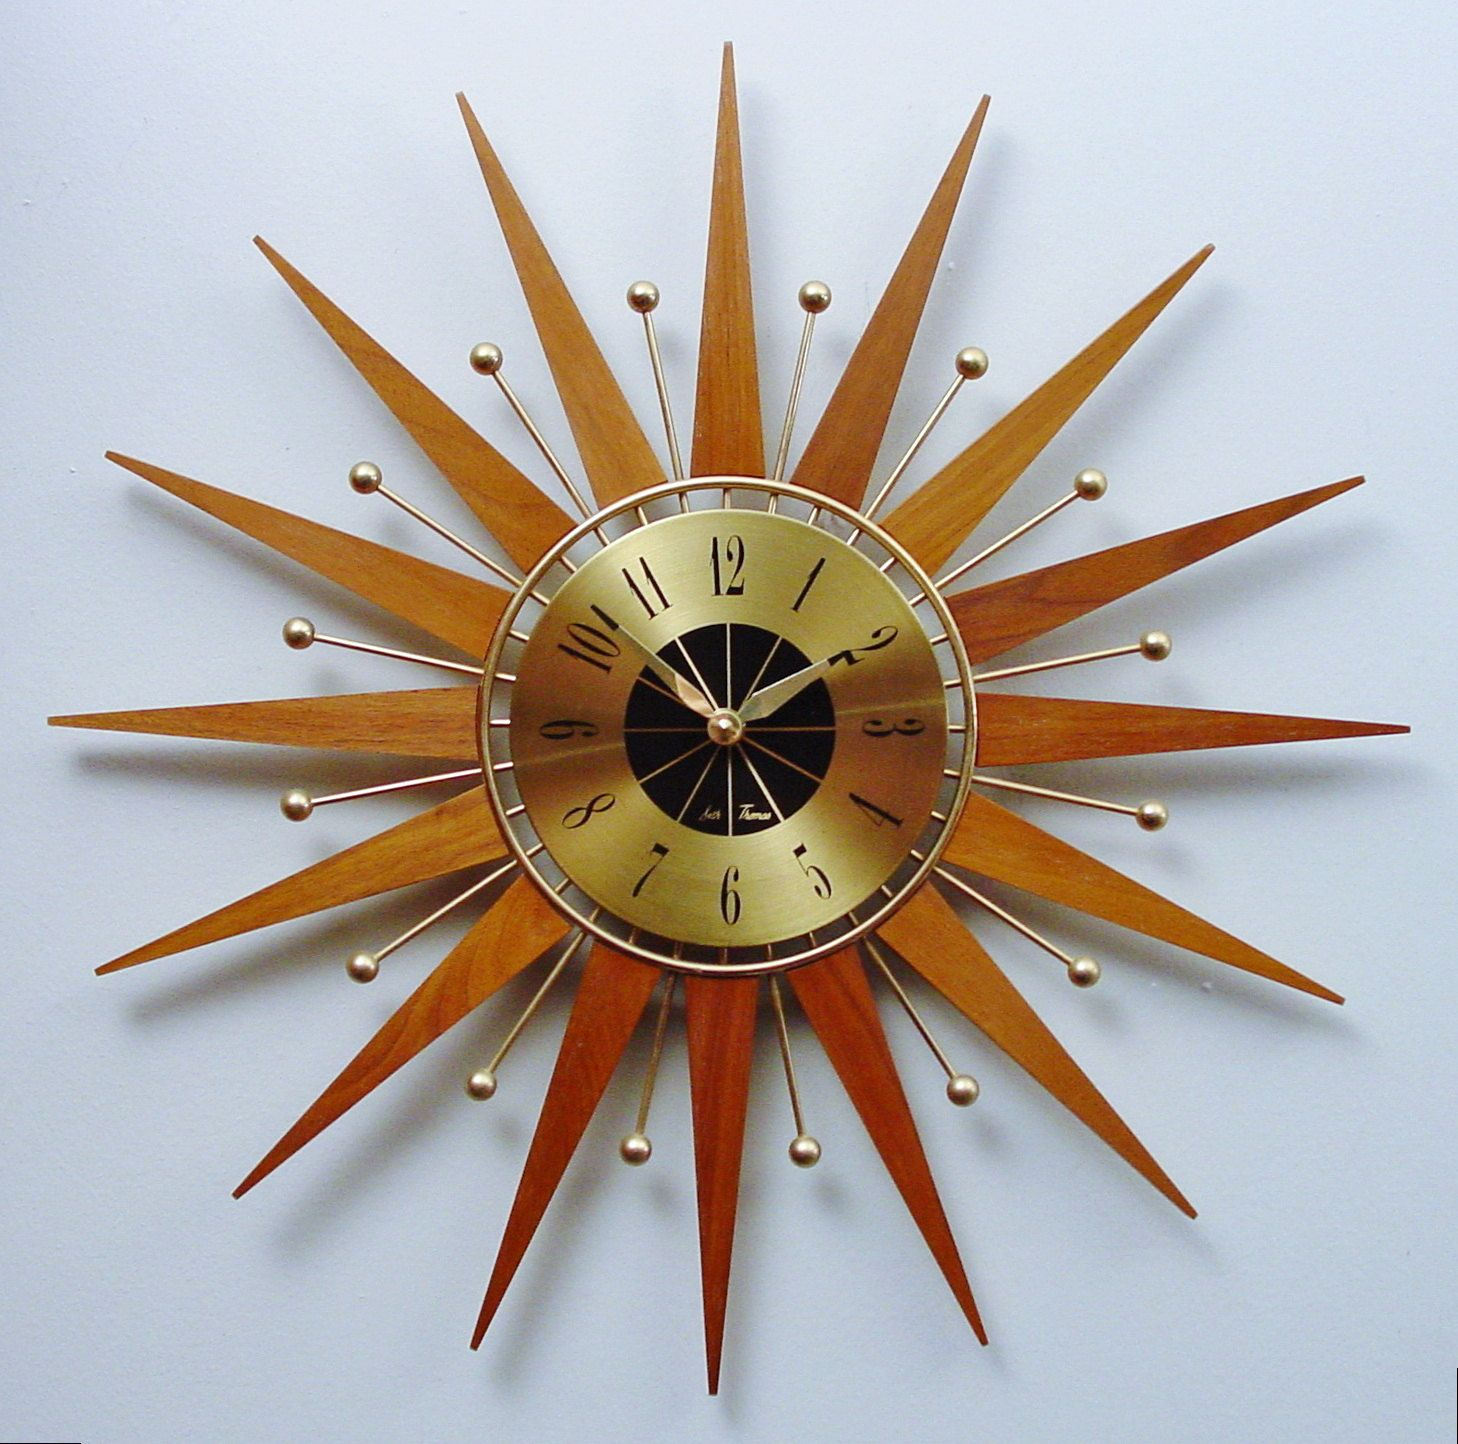 Awesome Mid Century Modern Clock In 2020 Mid Century Modern Clocks Mid Century Clock Sunburst Clock